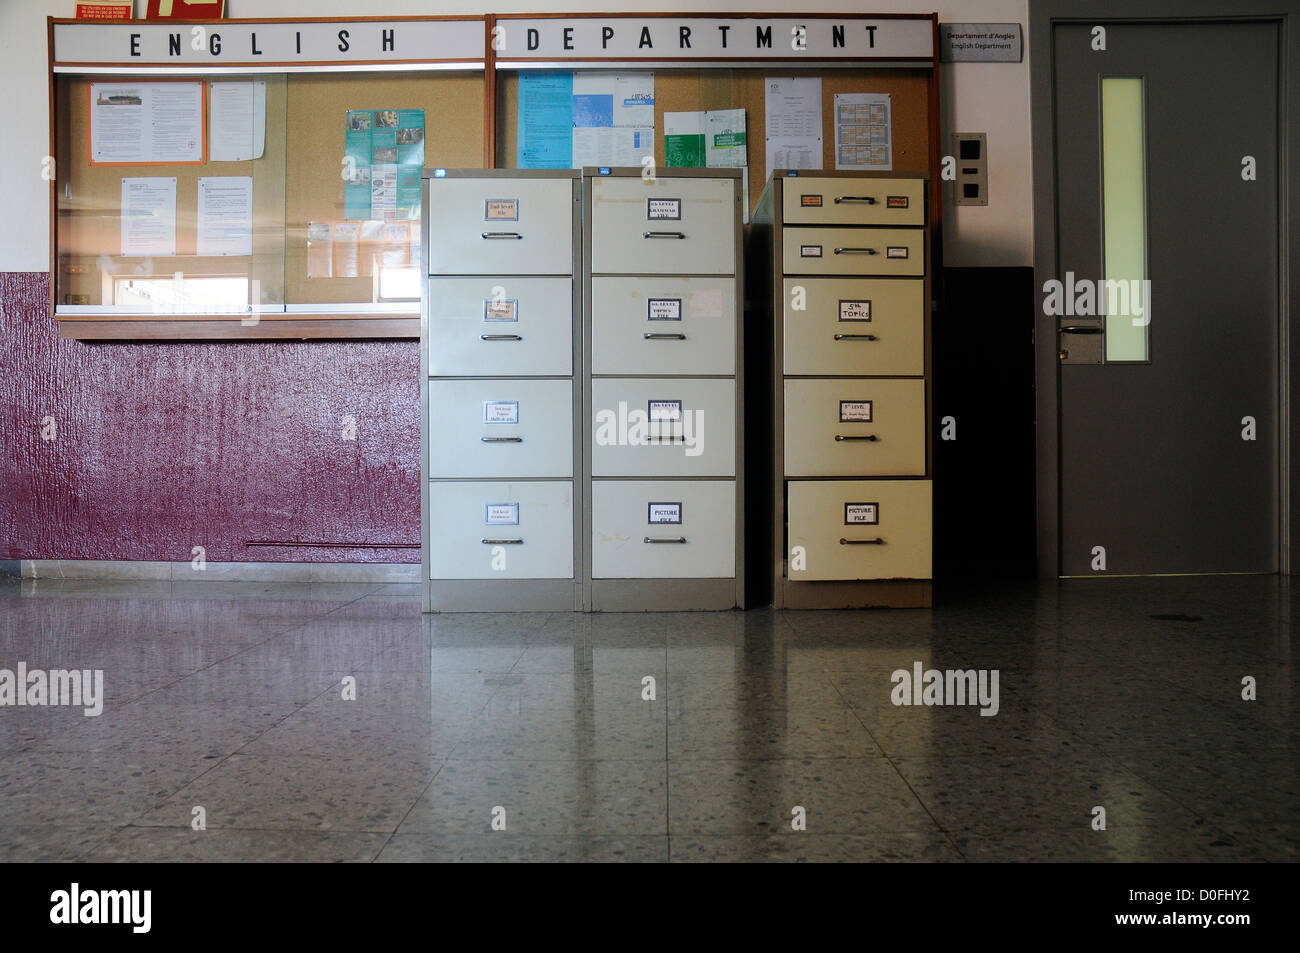 English department metal file cabinets languages school Stock Photo